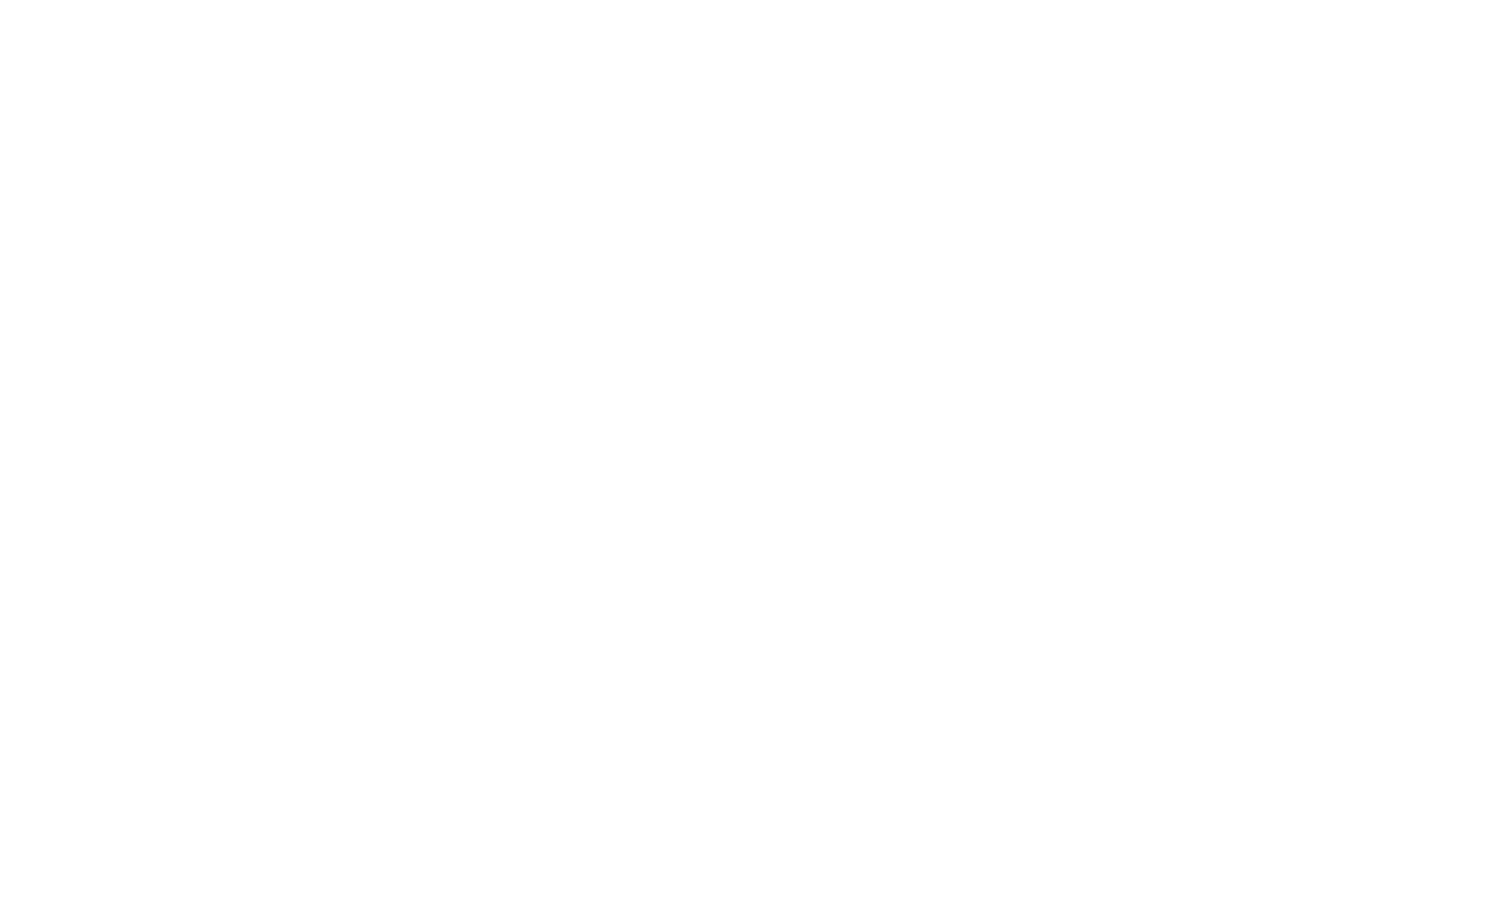 Pennsylvania Association of Mutual Insurance Companies